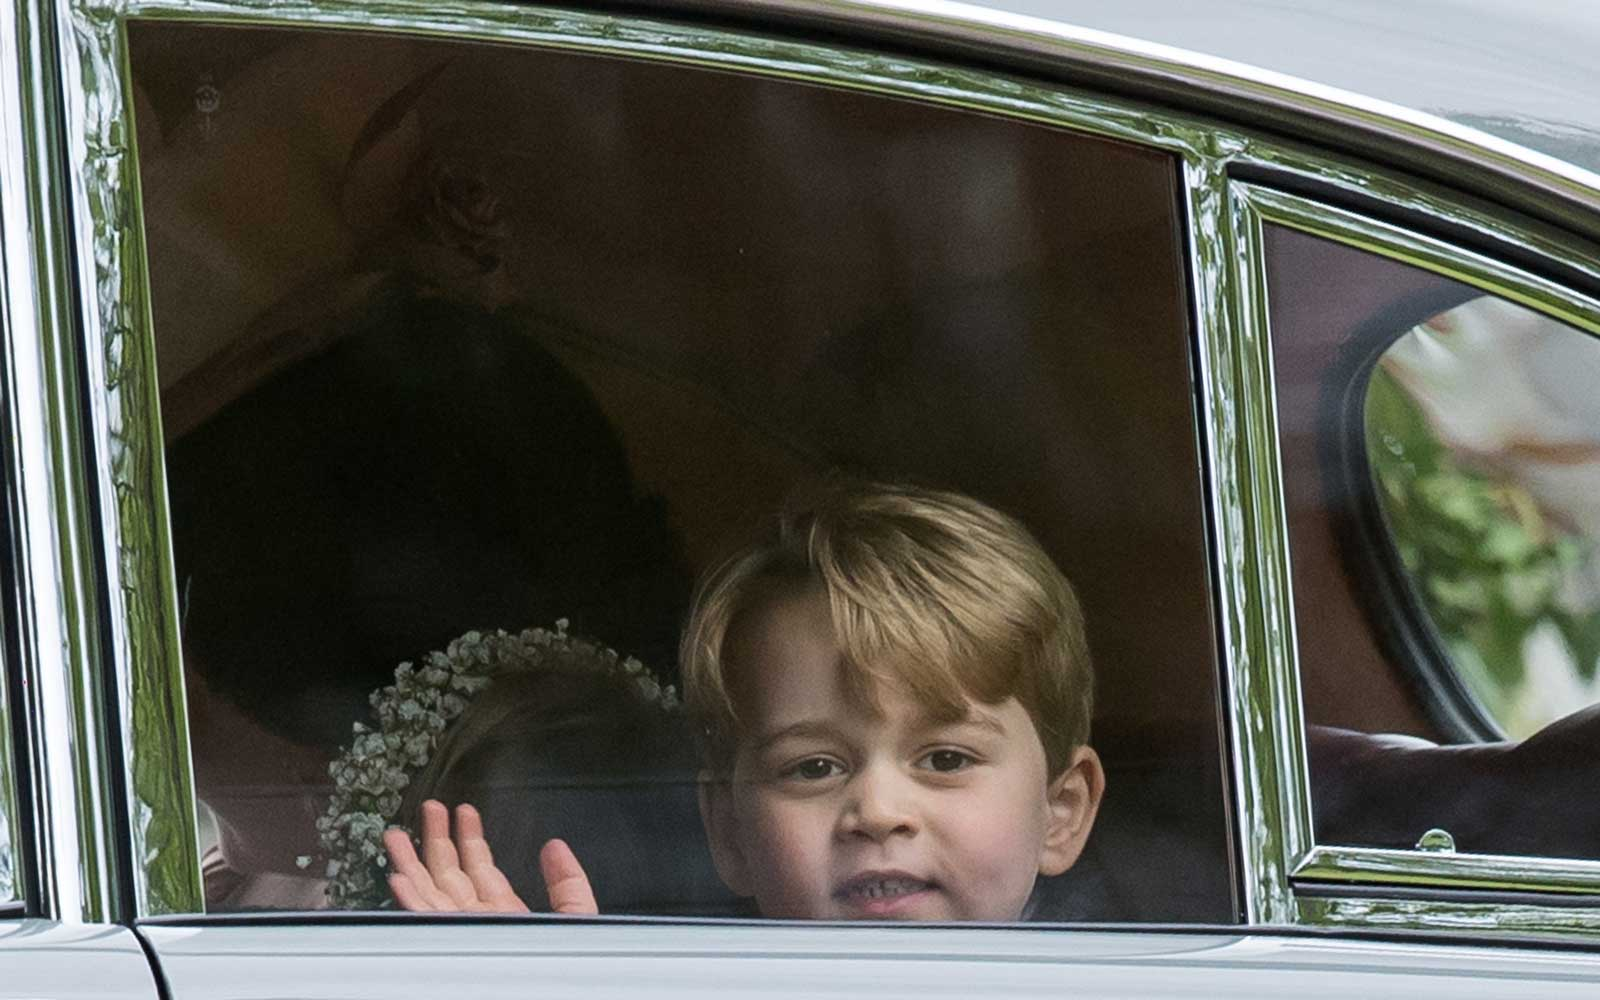 Prince George Turns 4: All the Countries He's Traveled to Already